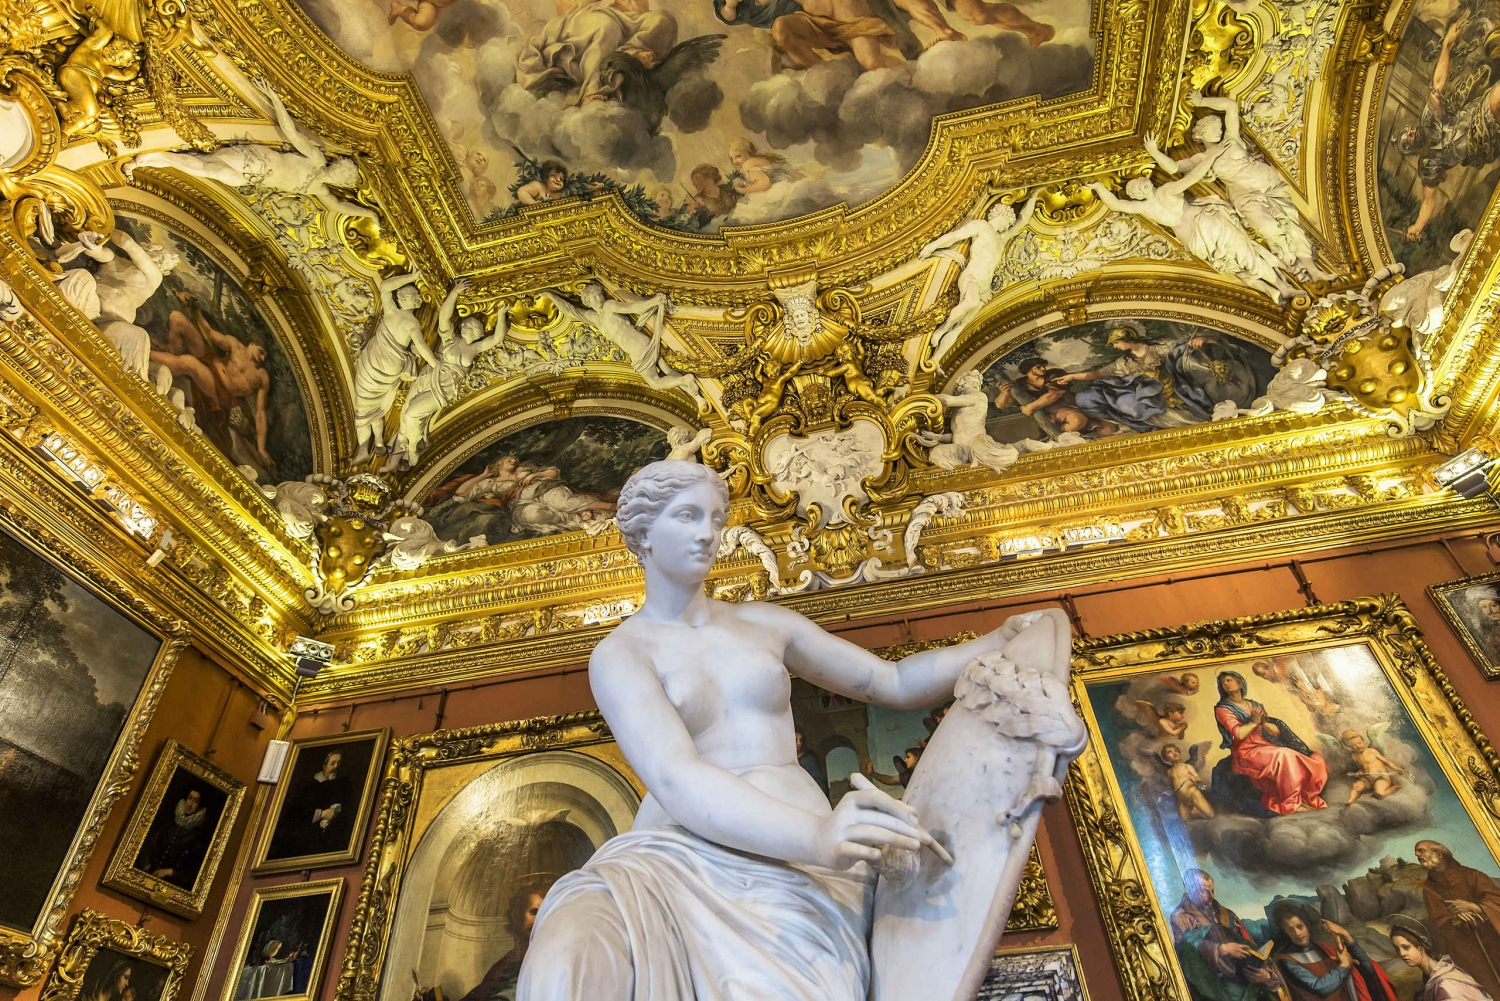 Palatine Gallery at Pitti Palace – Skip the Line Guided Tour